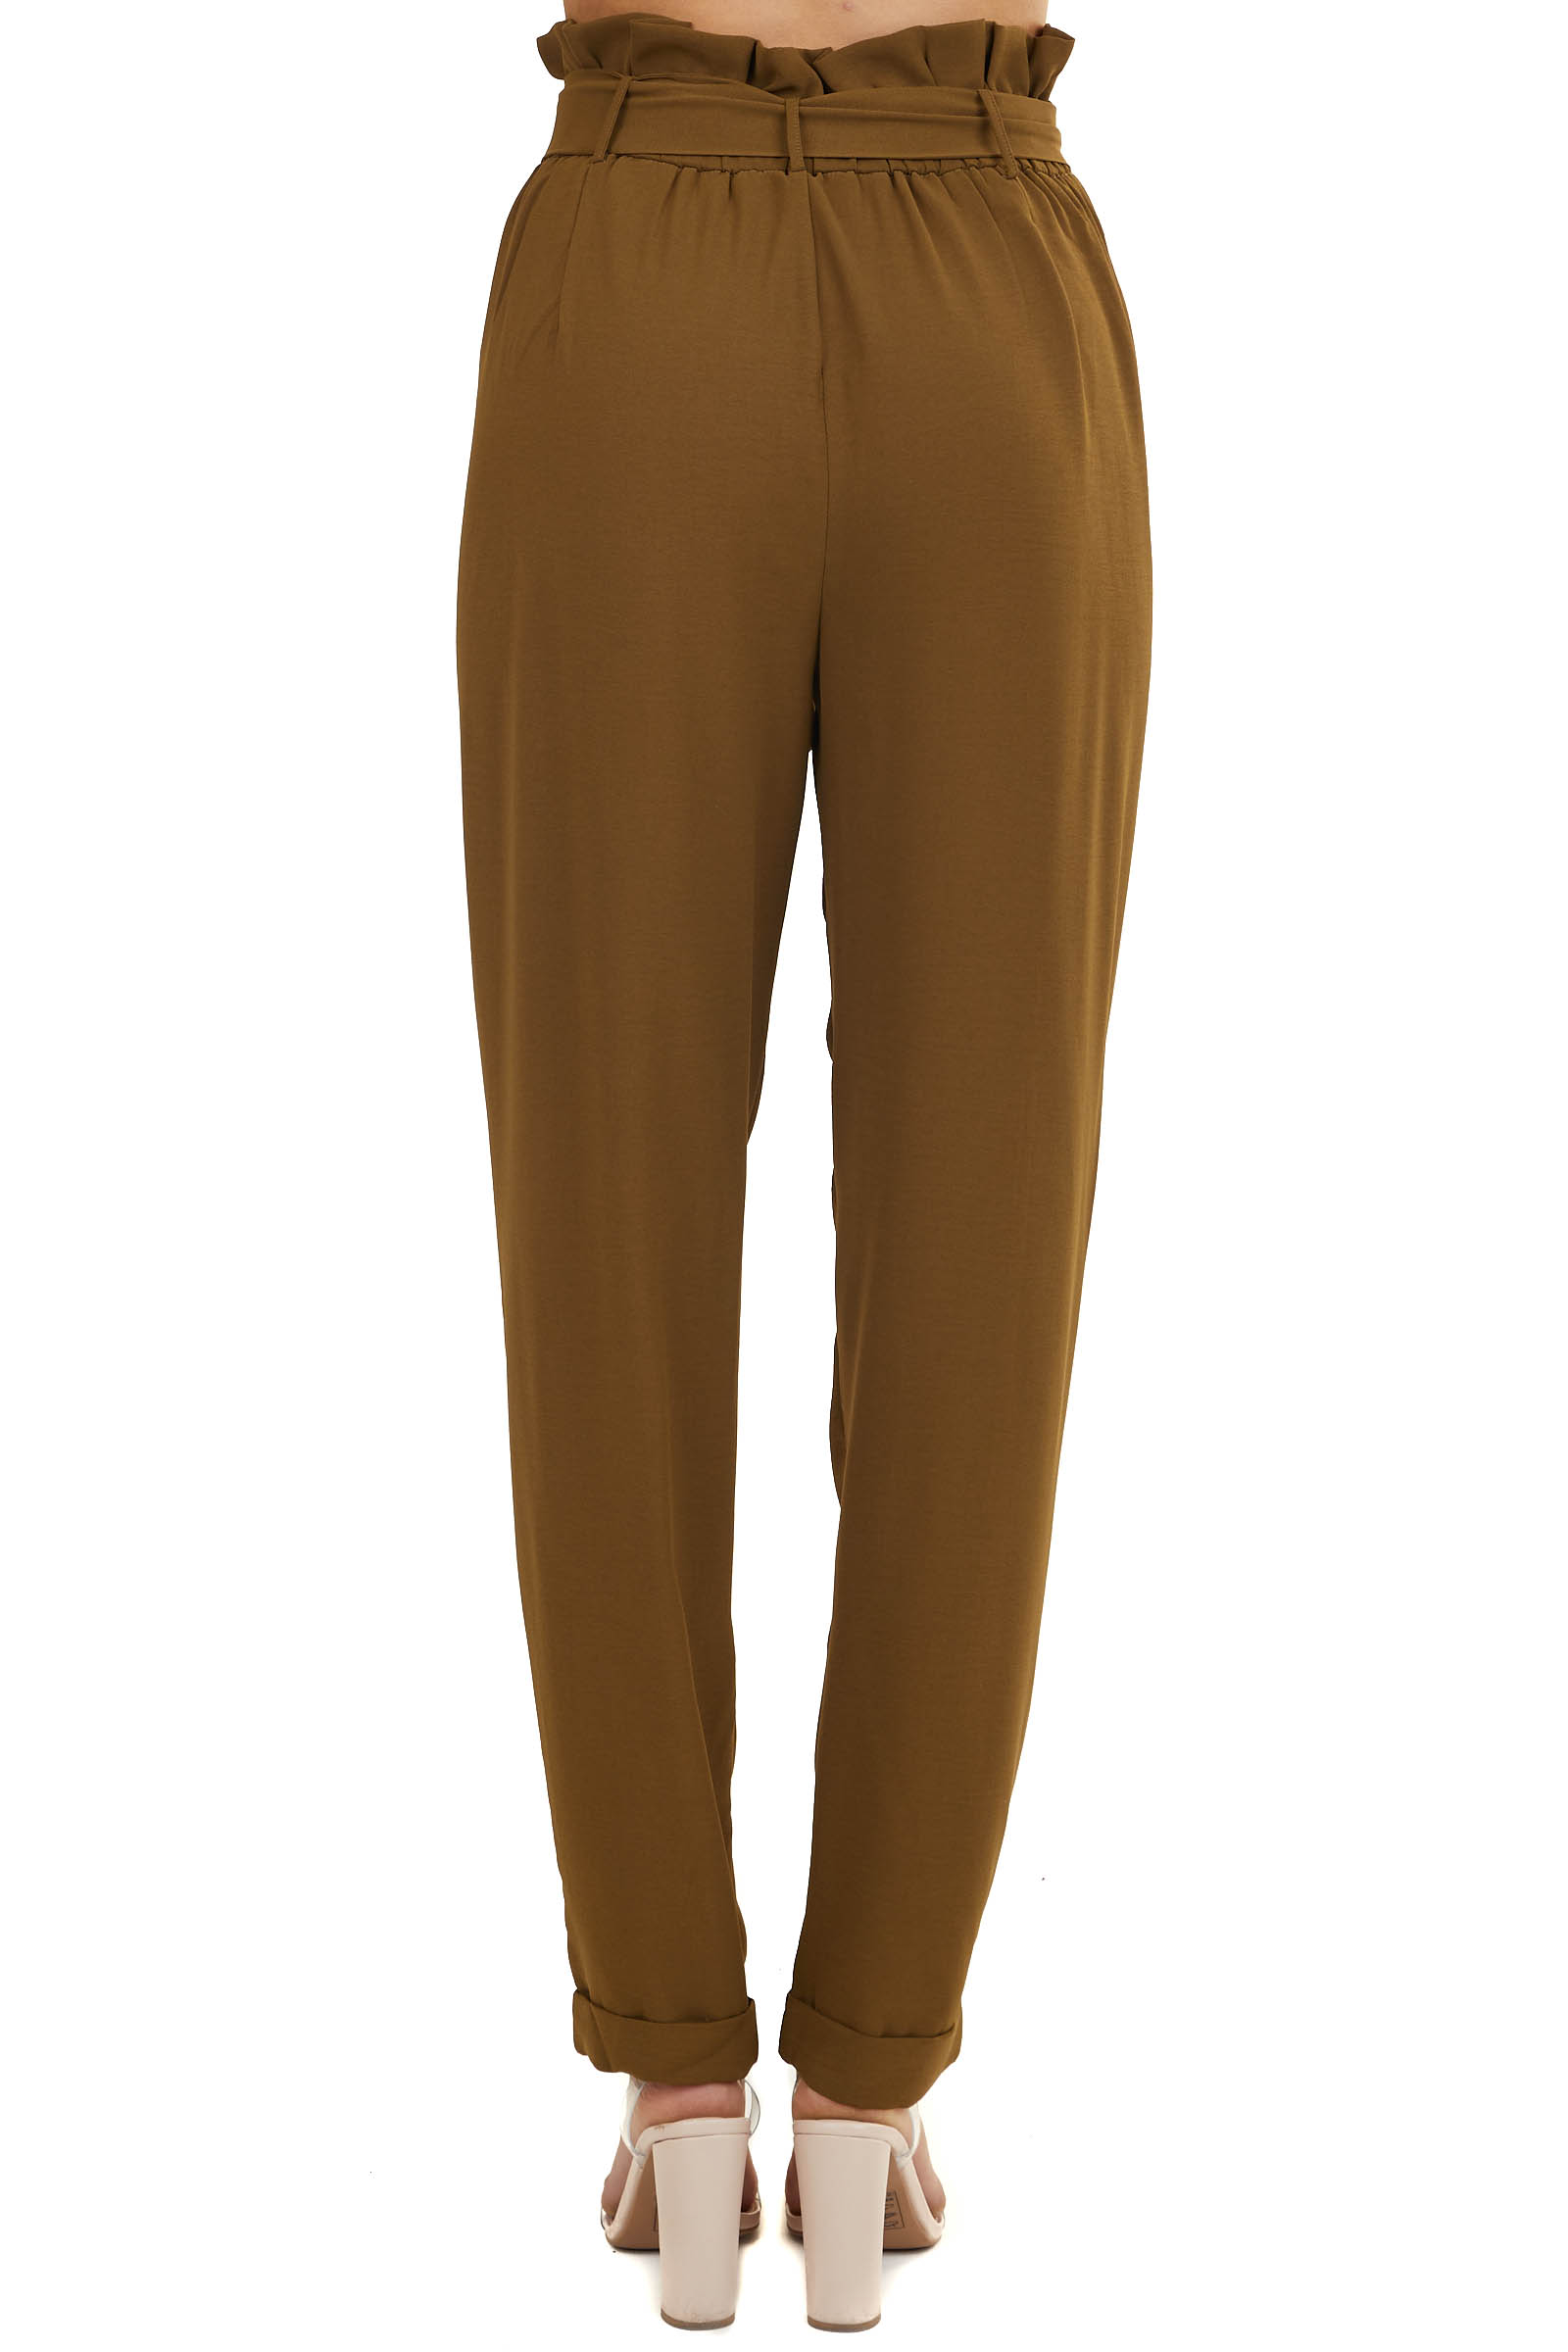 Olive Green Loose Fit Pants with Front Tie and Pockets